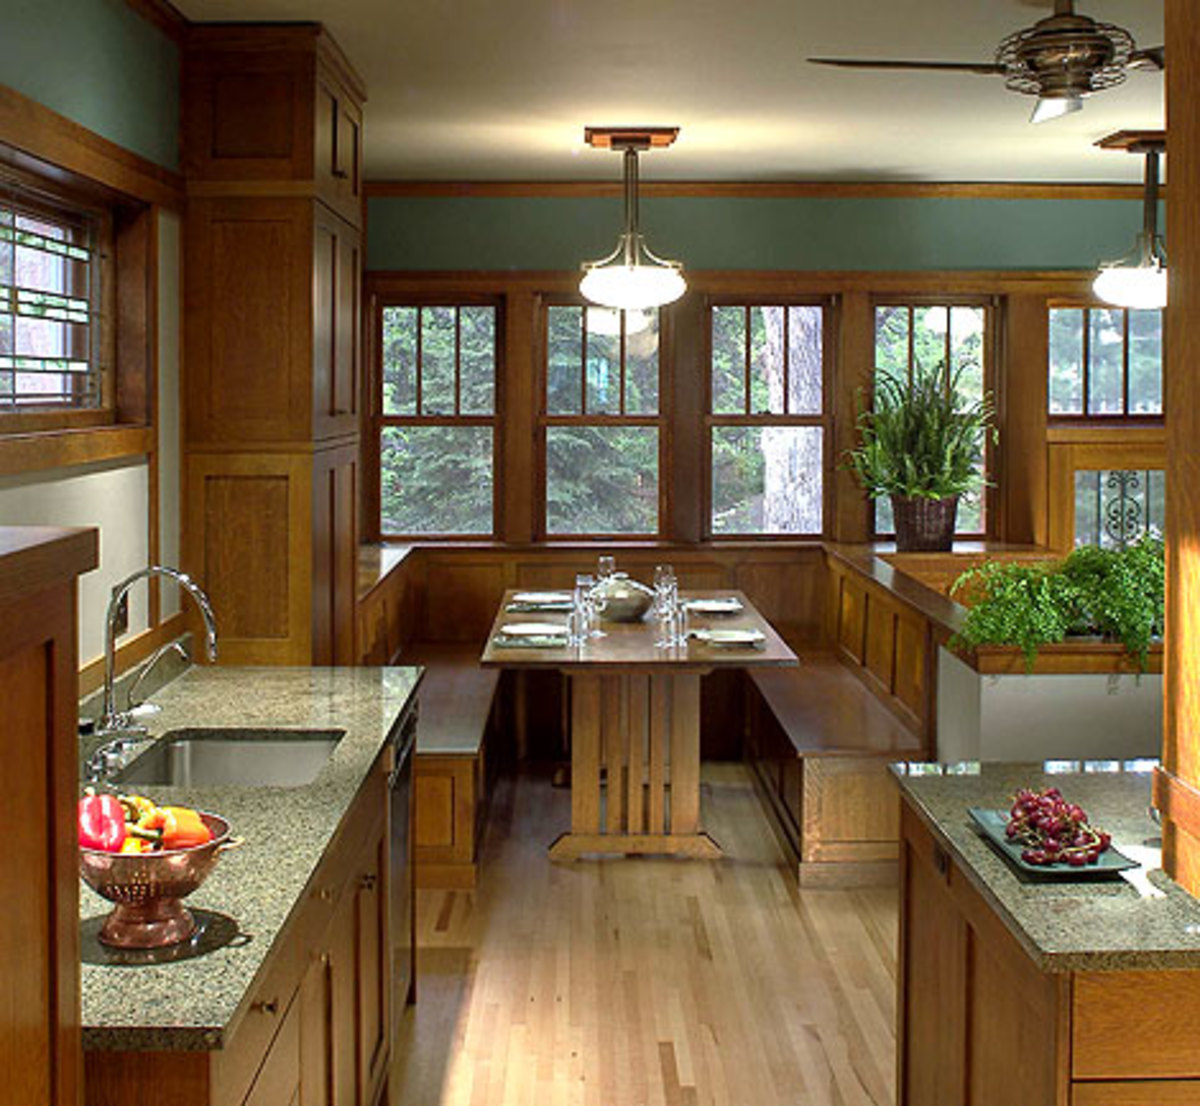 Millwork In Arts & Crafts Style Homes